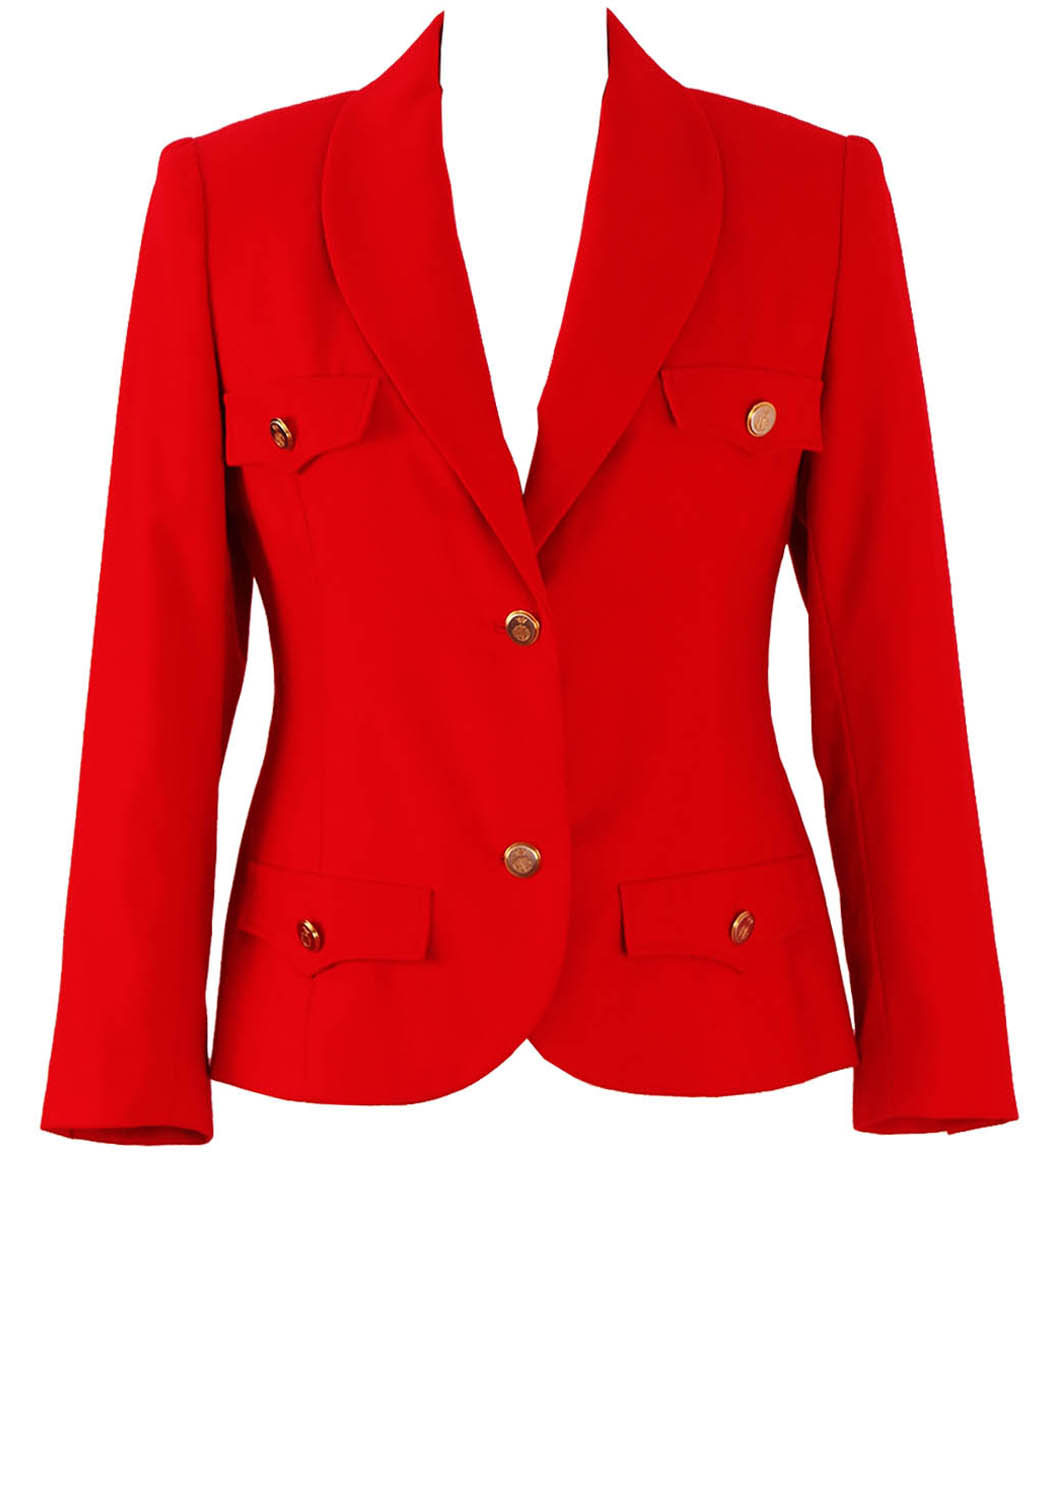 94deae807 Military Style Fitted Red Jacket with Gold Buttons - M